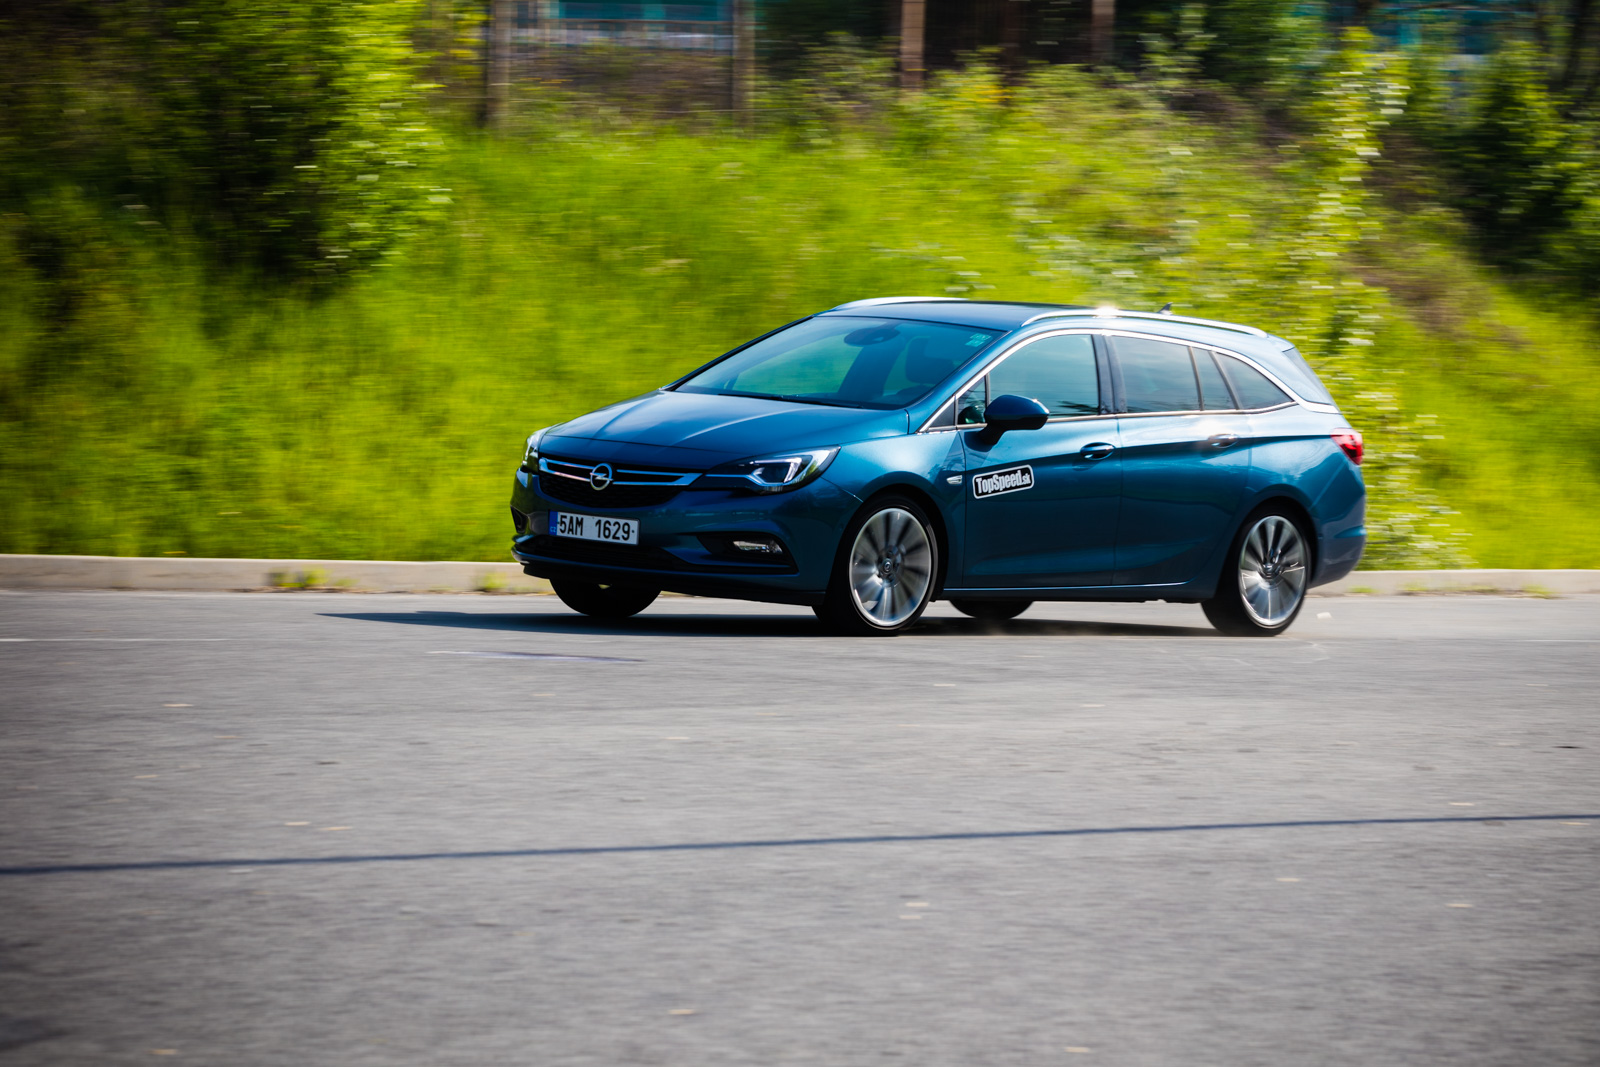 Opel Astra Sports Tourer 1,6 CDTI BiTurbo